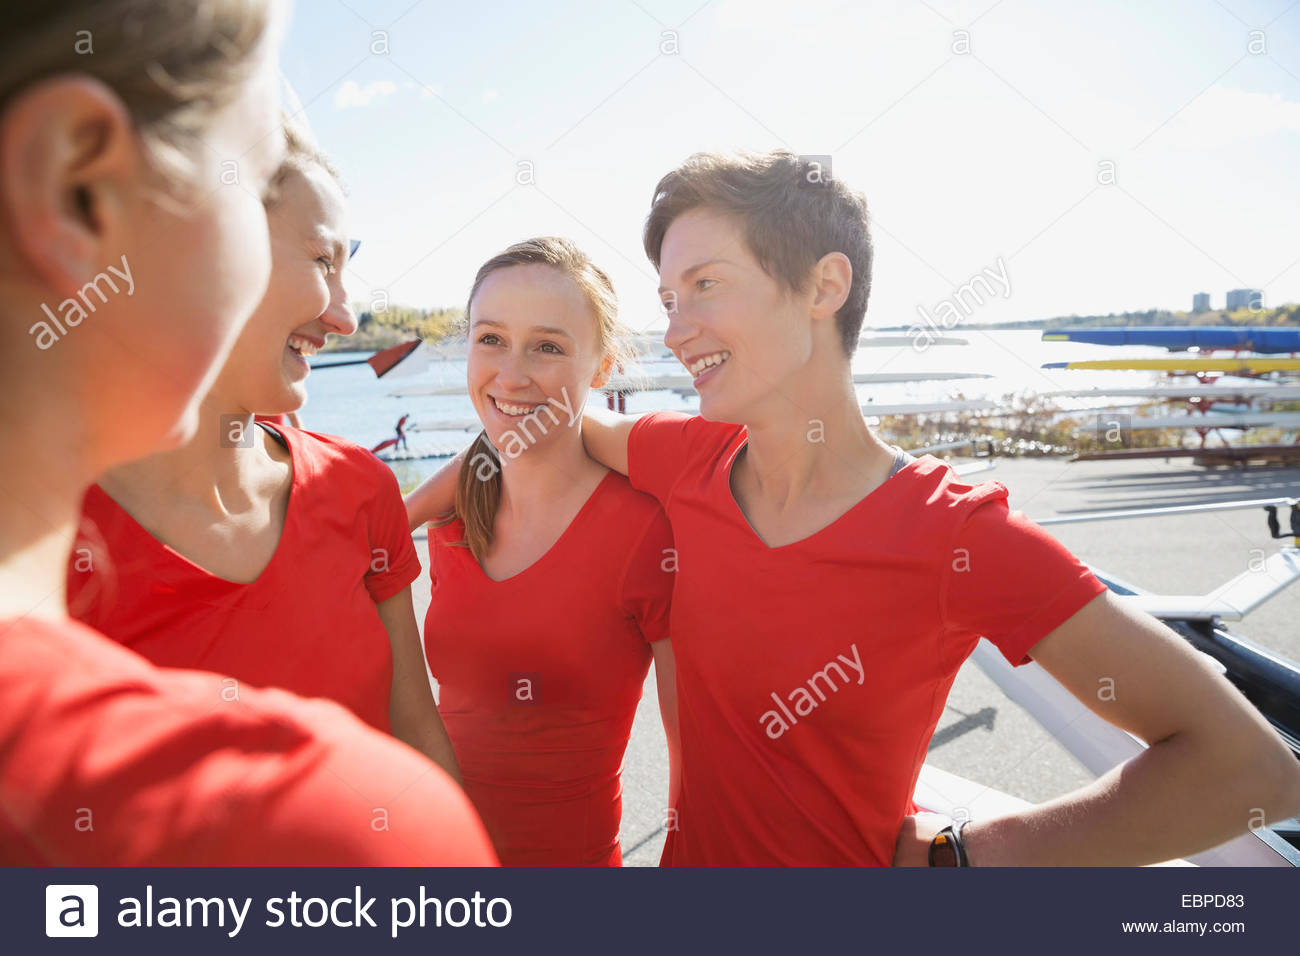 Rowing team talking at waterfront Stock Photo